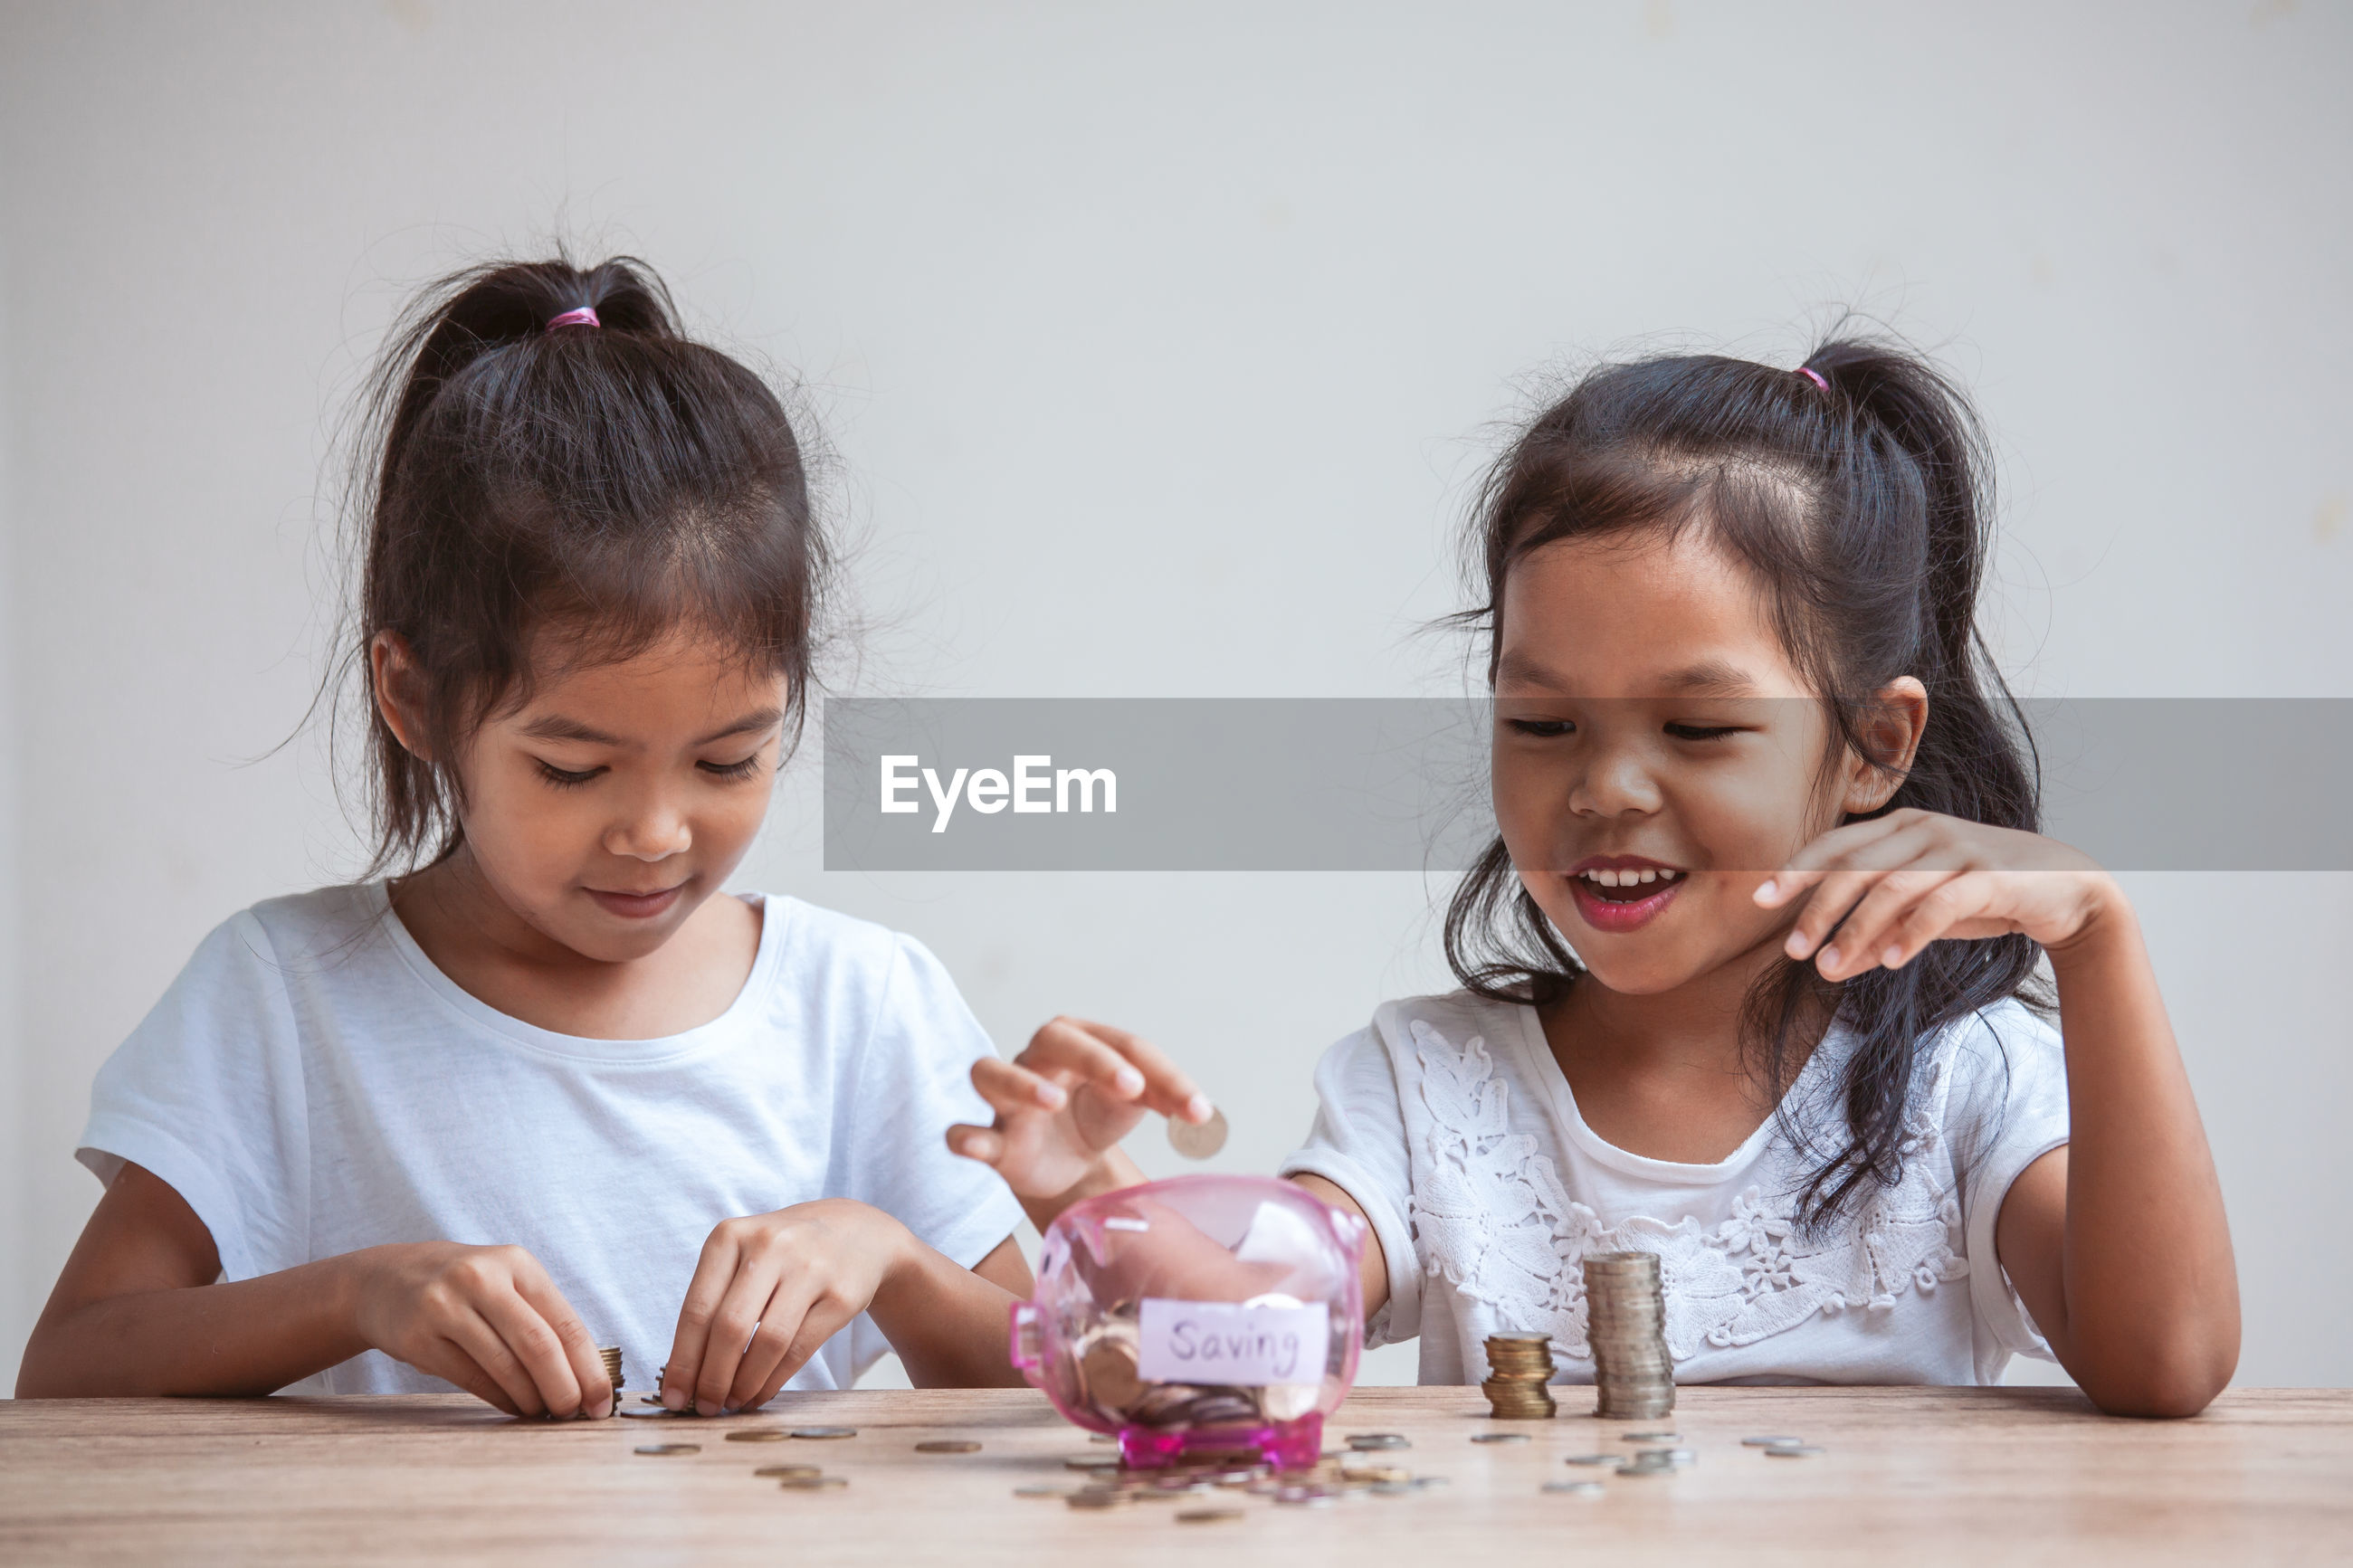 Sisters inserting coins in piggy bank on table against wall